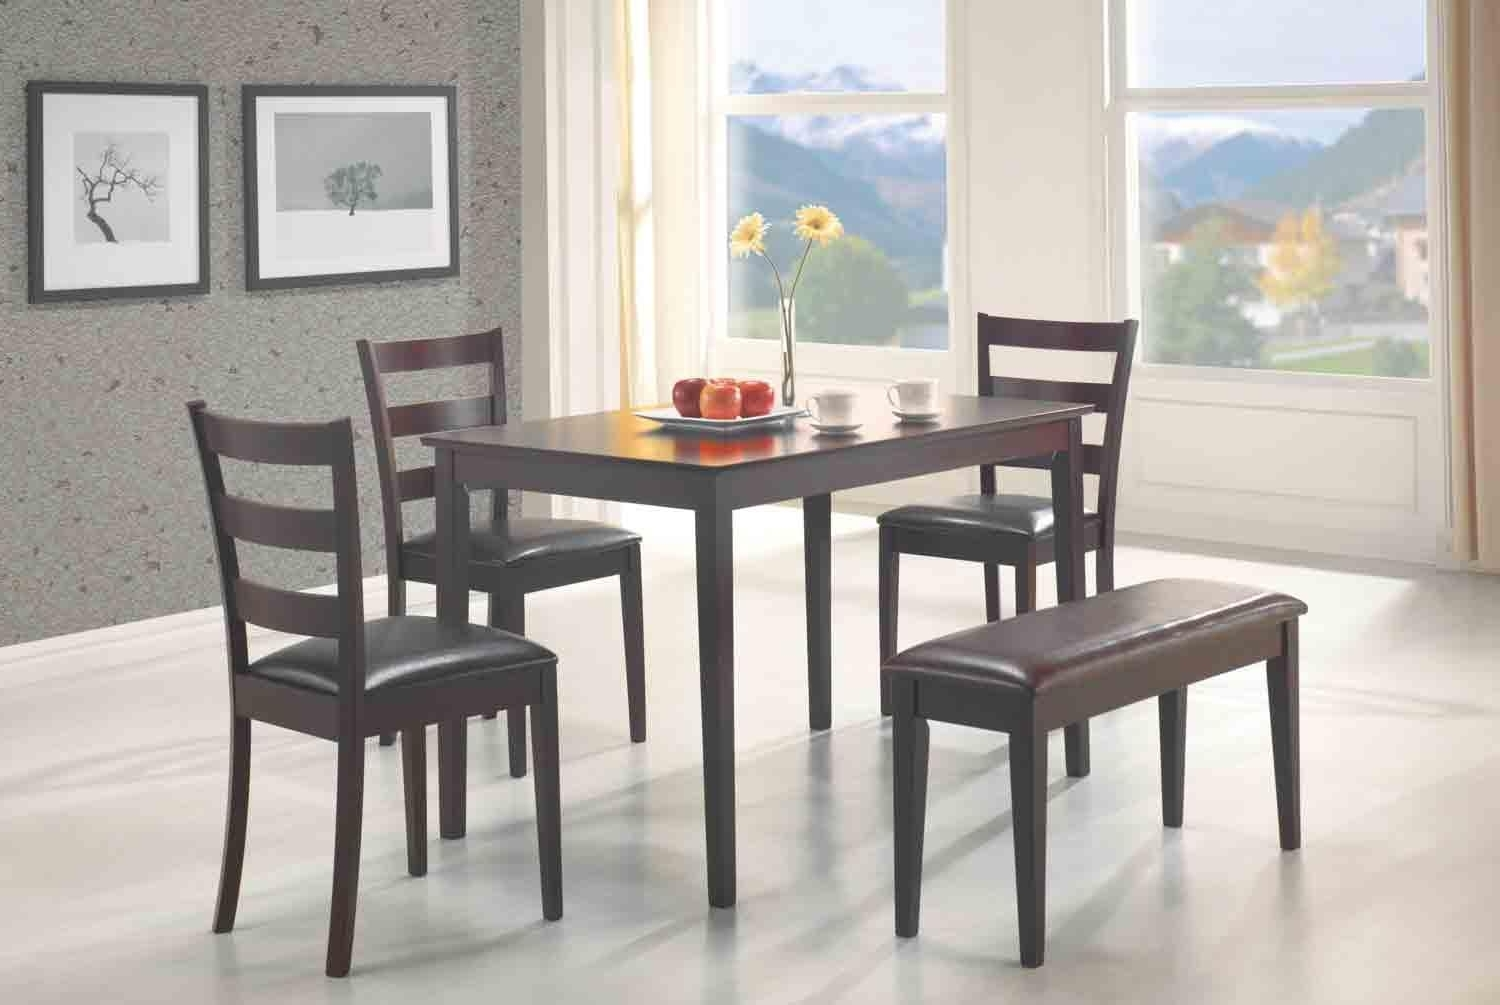 5 Pcs Dining Set Table, 3 Chairs And Bench Dc Furniture Within Favorite Small Dining Tables And Bench Sets (View 2 of 25)